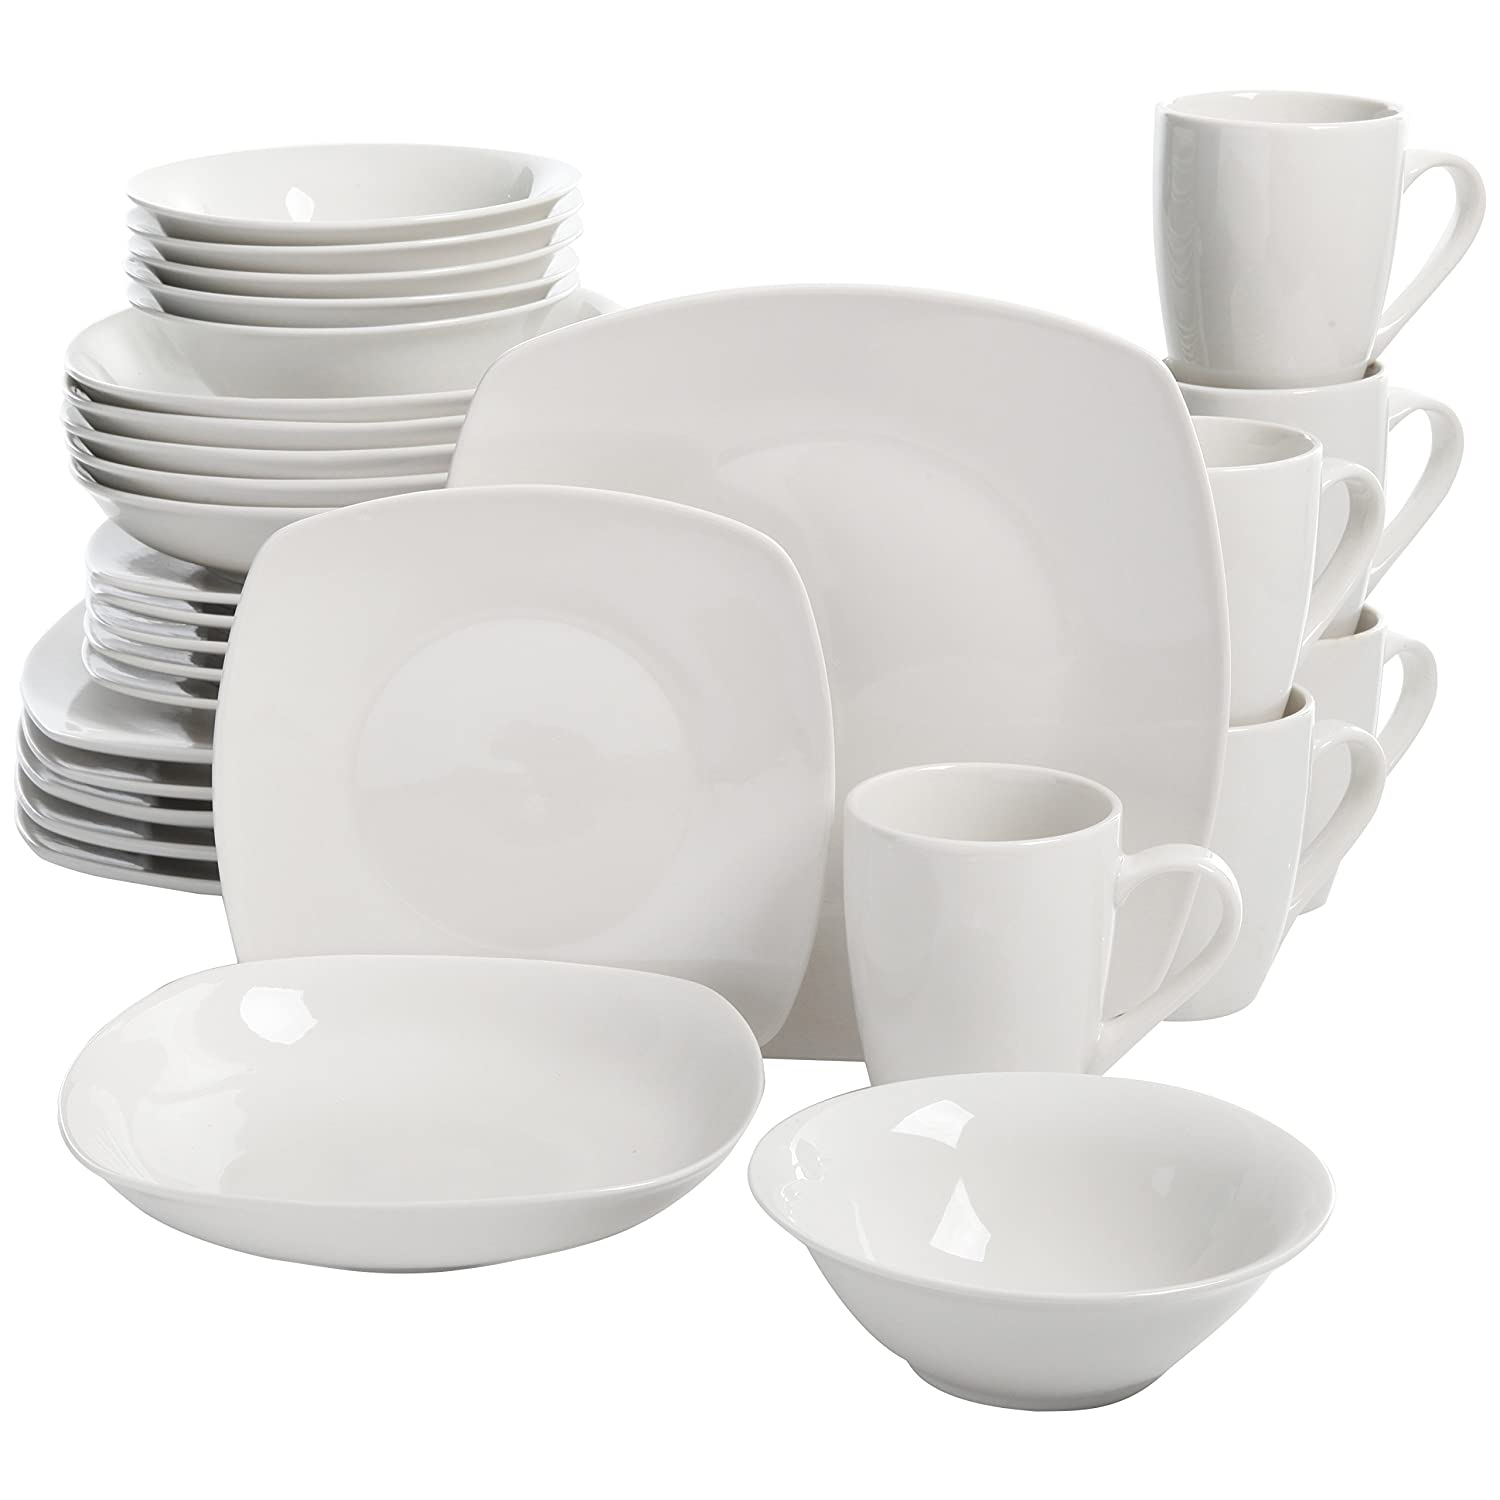 Amazon.com | Square Dinnerware Set 30 Piece Dish Set White Contemporary Square Dishes for the Home  Dinnerware Sets  sc 1 st  Amazon.com & Amazon.com | Square Dinnerware Set 30 Piece Dish Set White ...